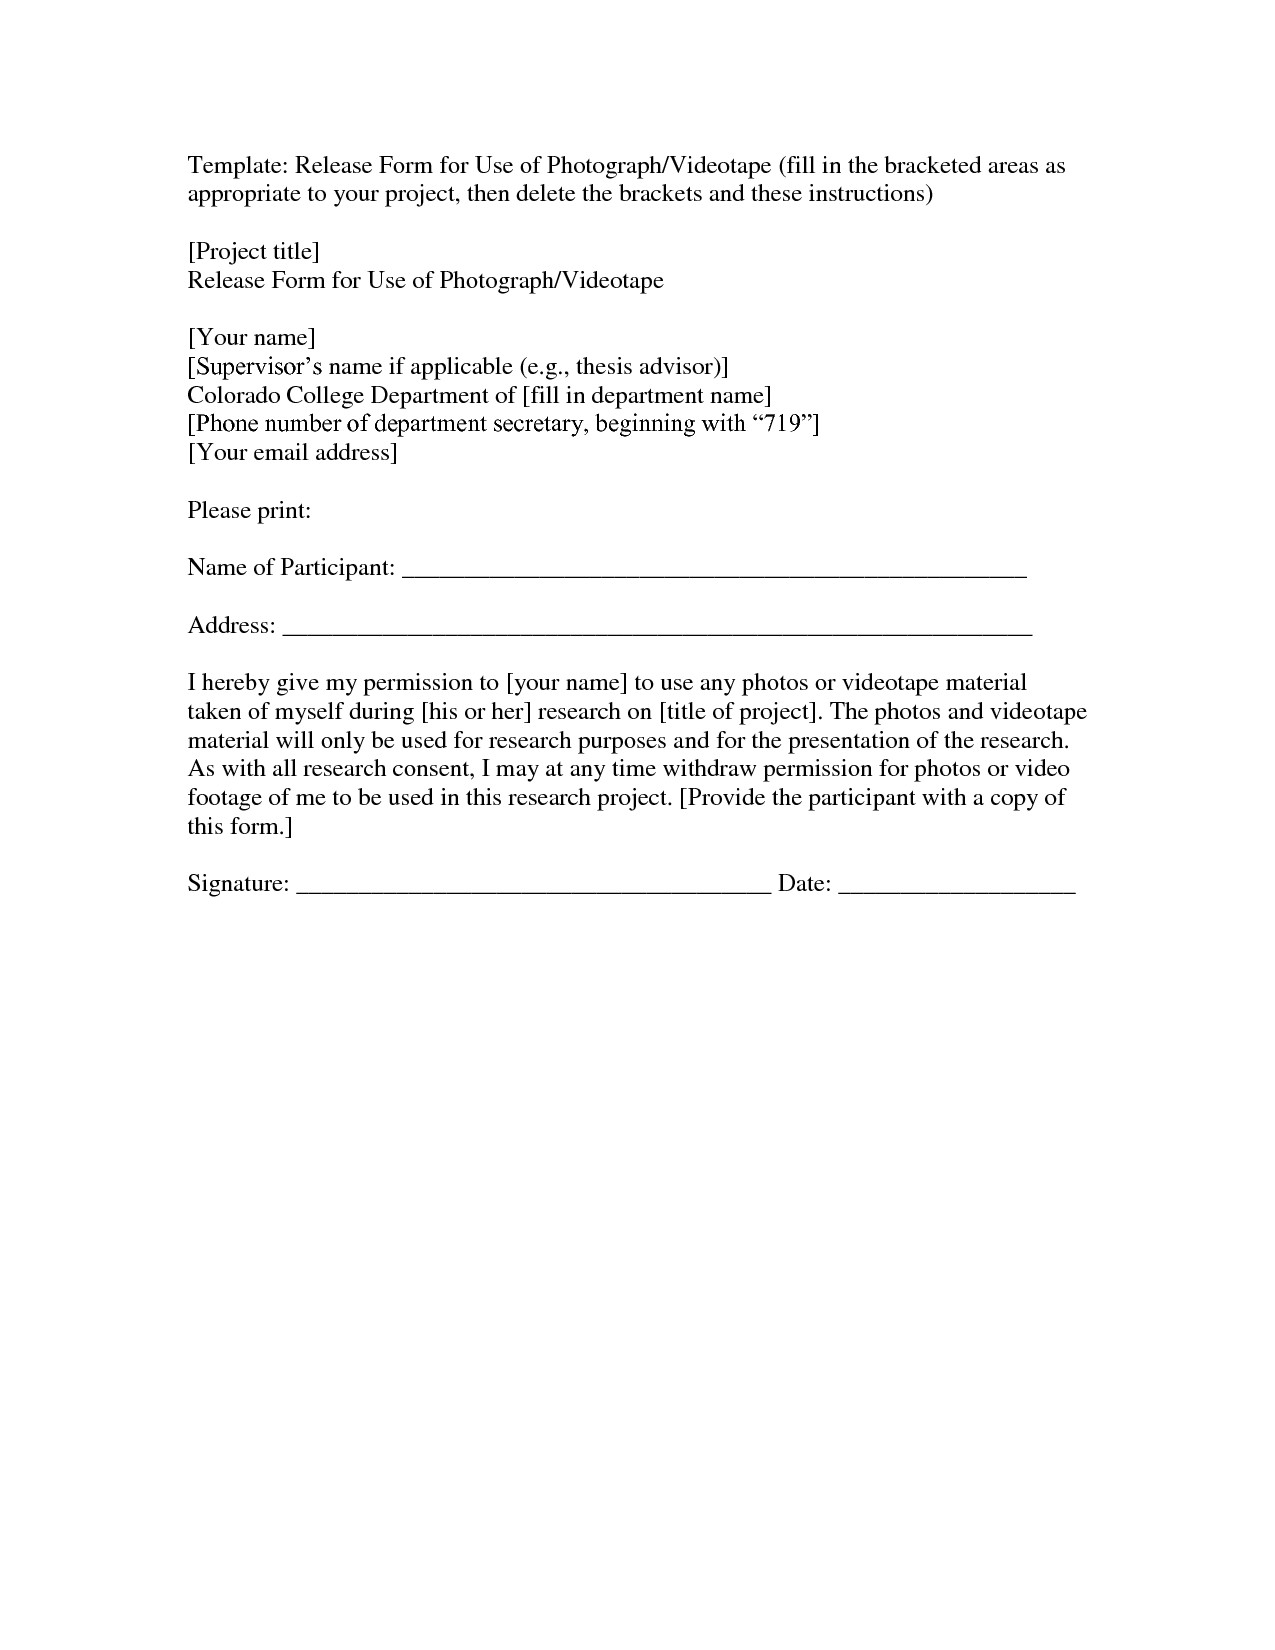 Photographic Release form Template Photo Release form Template Mobawallpaper